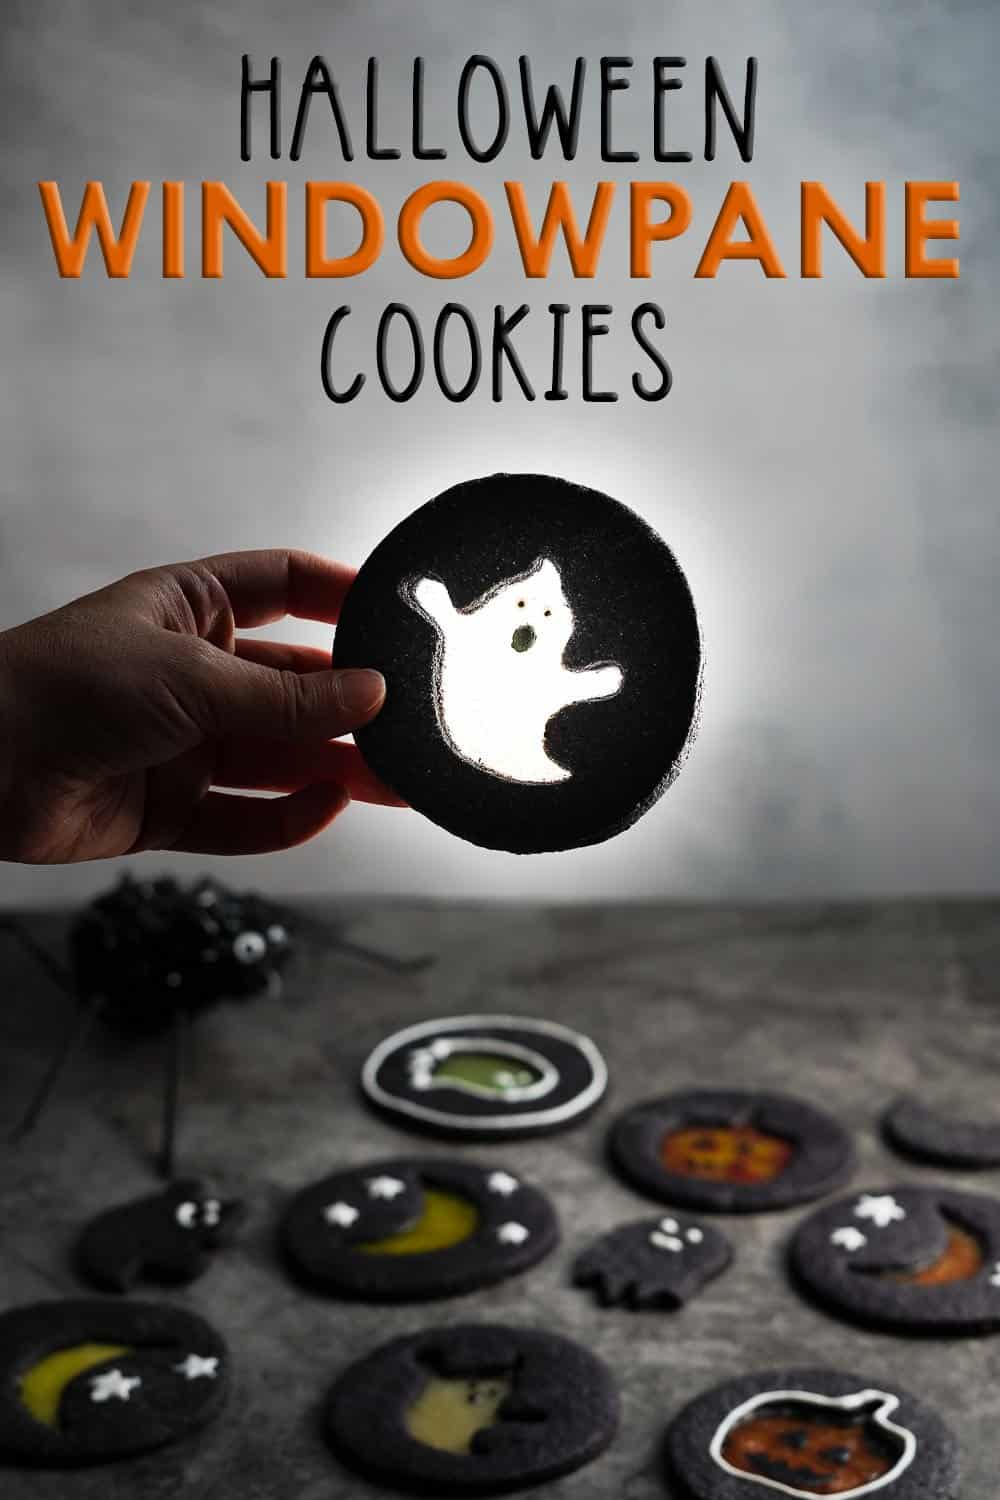 Halloween Windowpane Cookies - Spooky Ghost Pin